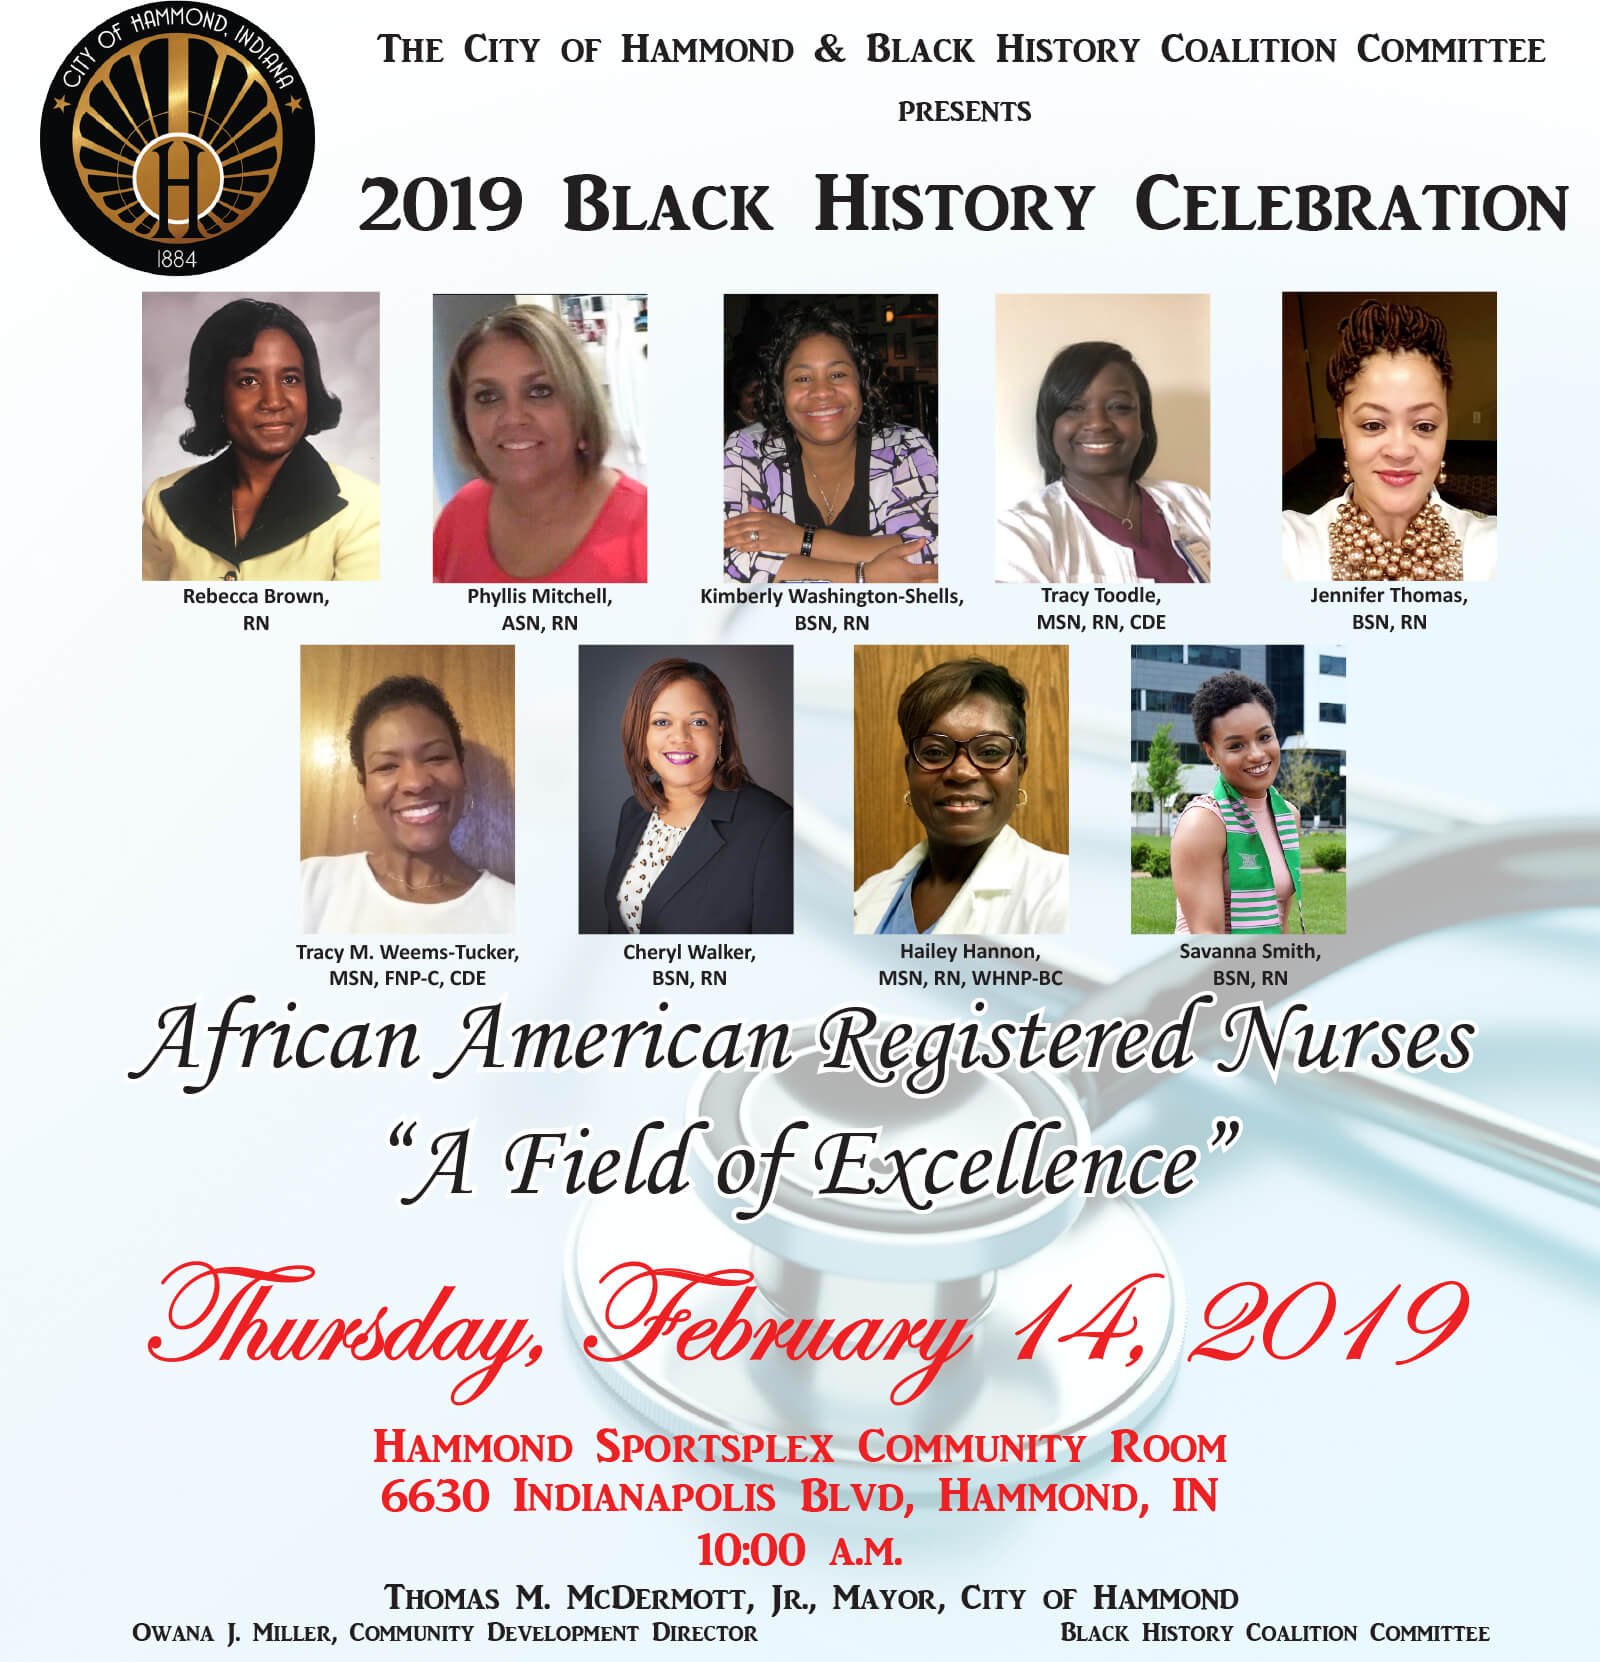 Hammond Mayor Thomas M. McDermott, Jr., the Department of Community Development, the Black History Coalition Committee and the Hammond Human Relations Commission, will host the 2019 Annual Black History Month Celebration. The celebration will take place in the Community Room of the Hammond Sportsplex Facility located at 6630 Indianapolis Blvd. Hammond, Indiana, on Thursday, February 14, 2019, beginning at 10:00 a.m.